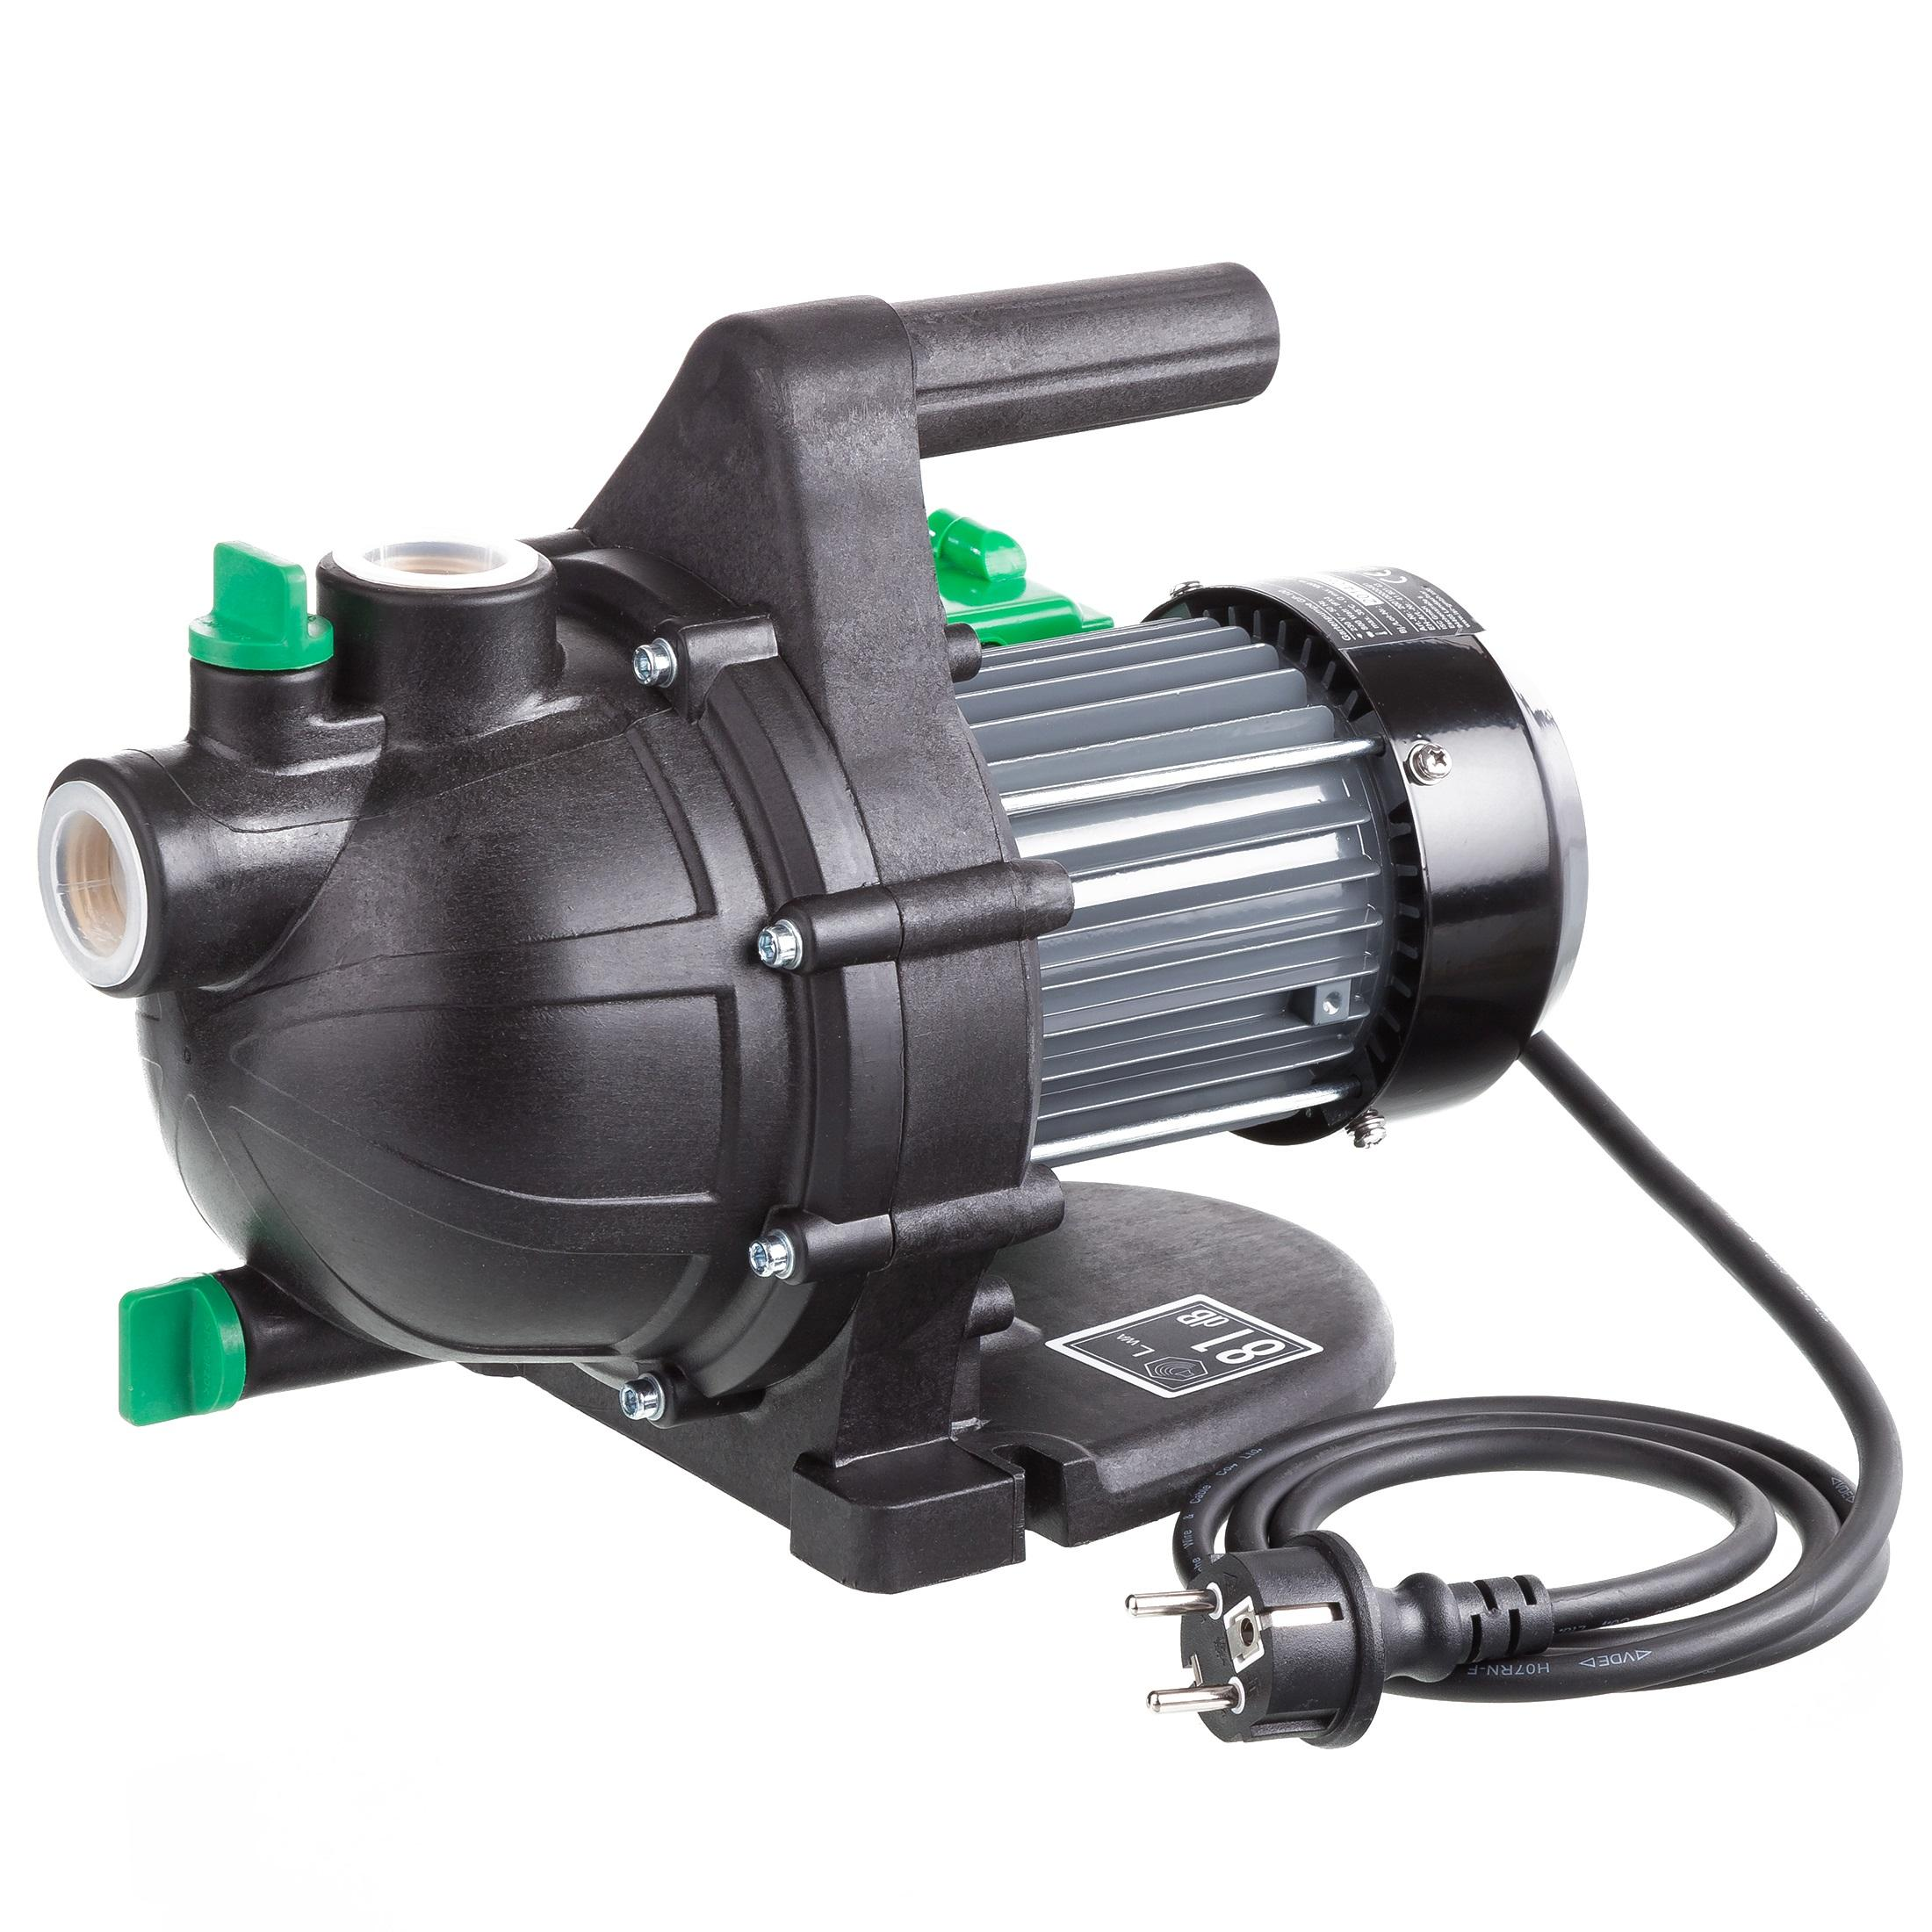 Ultranatura Pompe de jardin GP-8, 8 watts, débit max. de 8 8 l ...